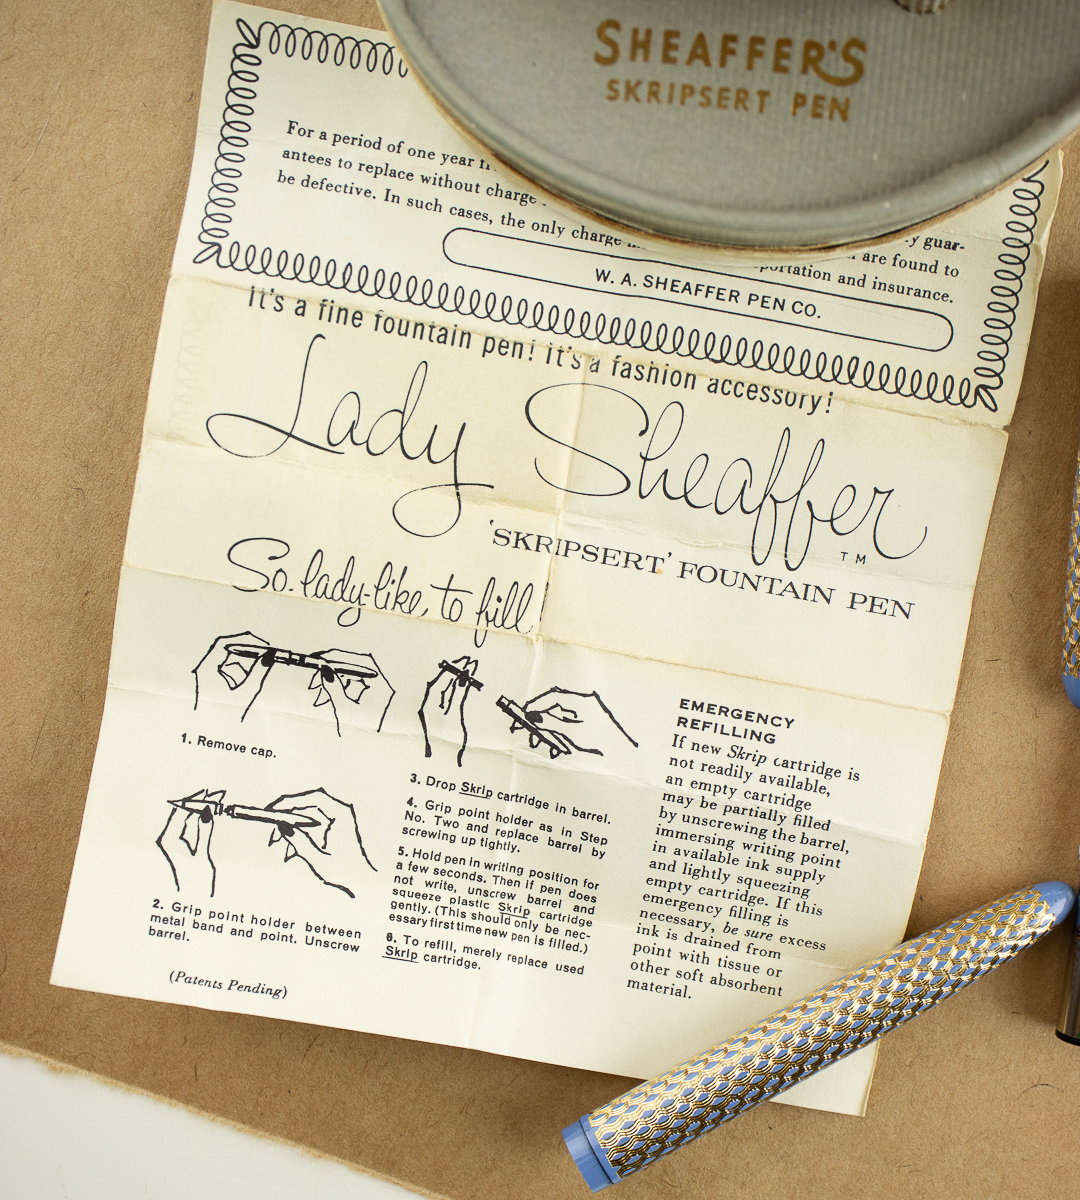 Lady Sheaffer Skripsert instructions